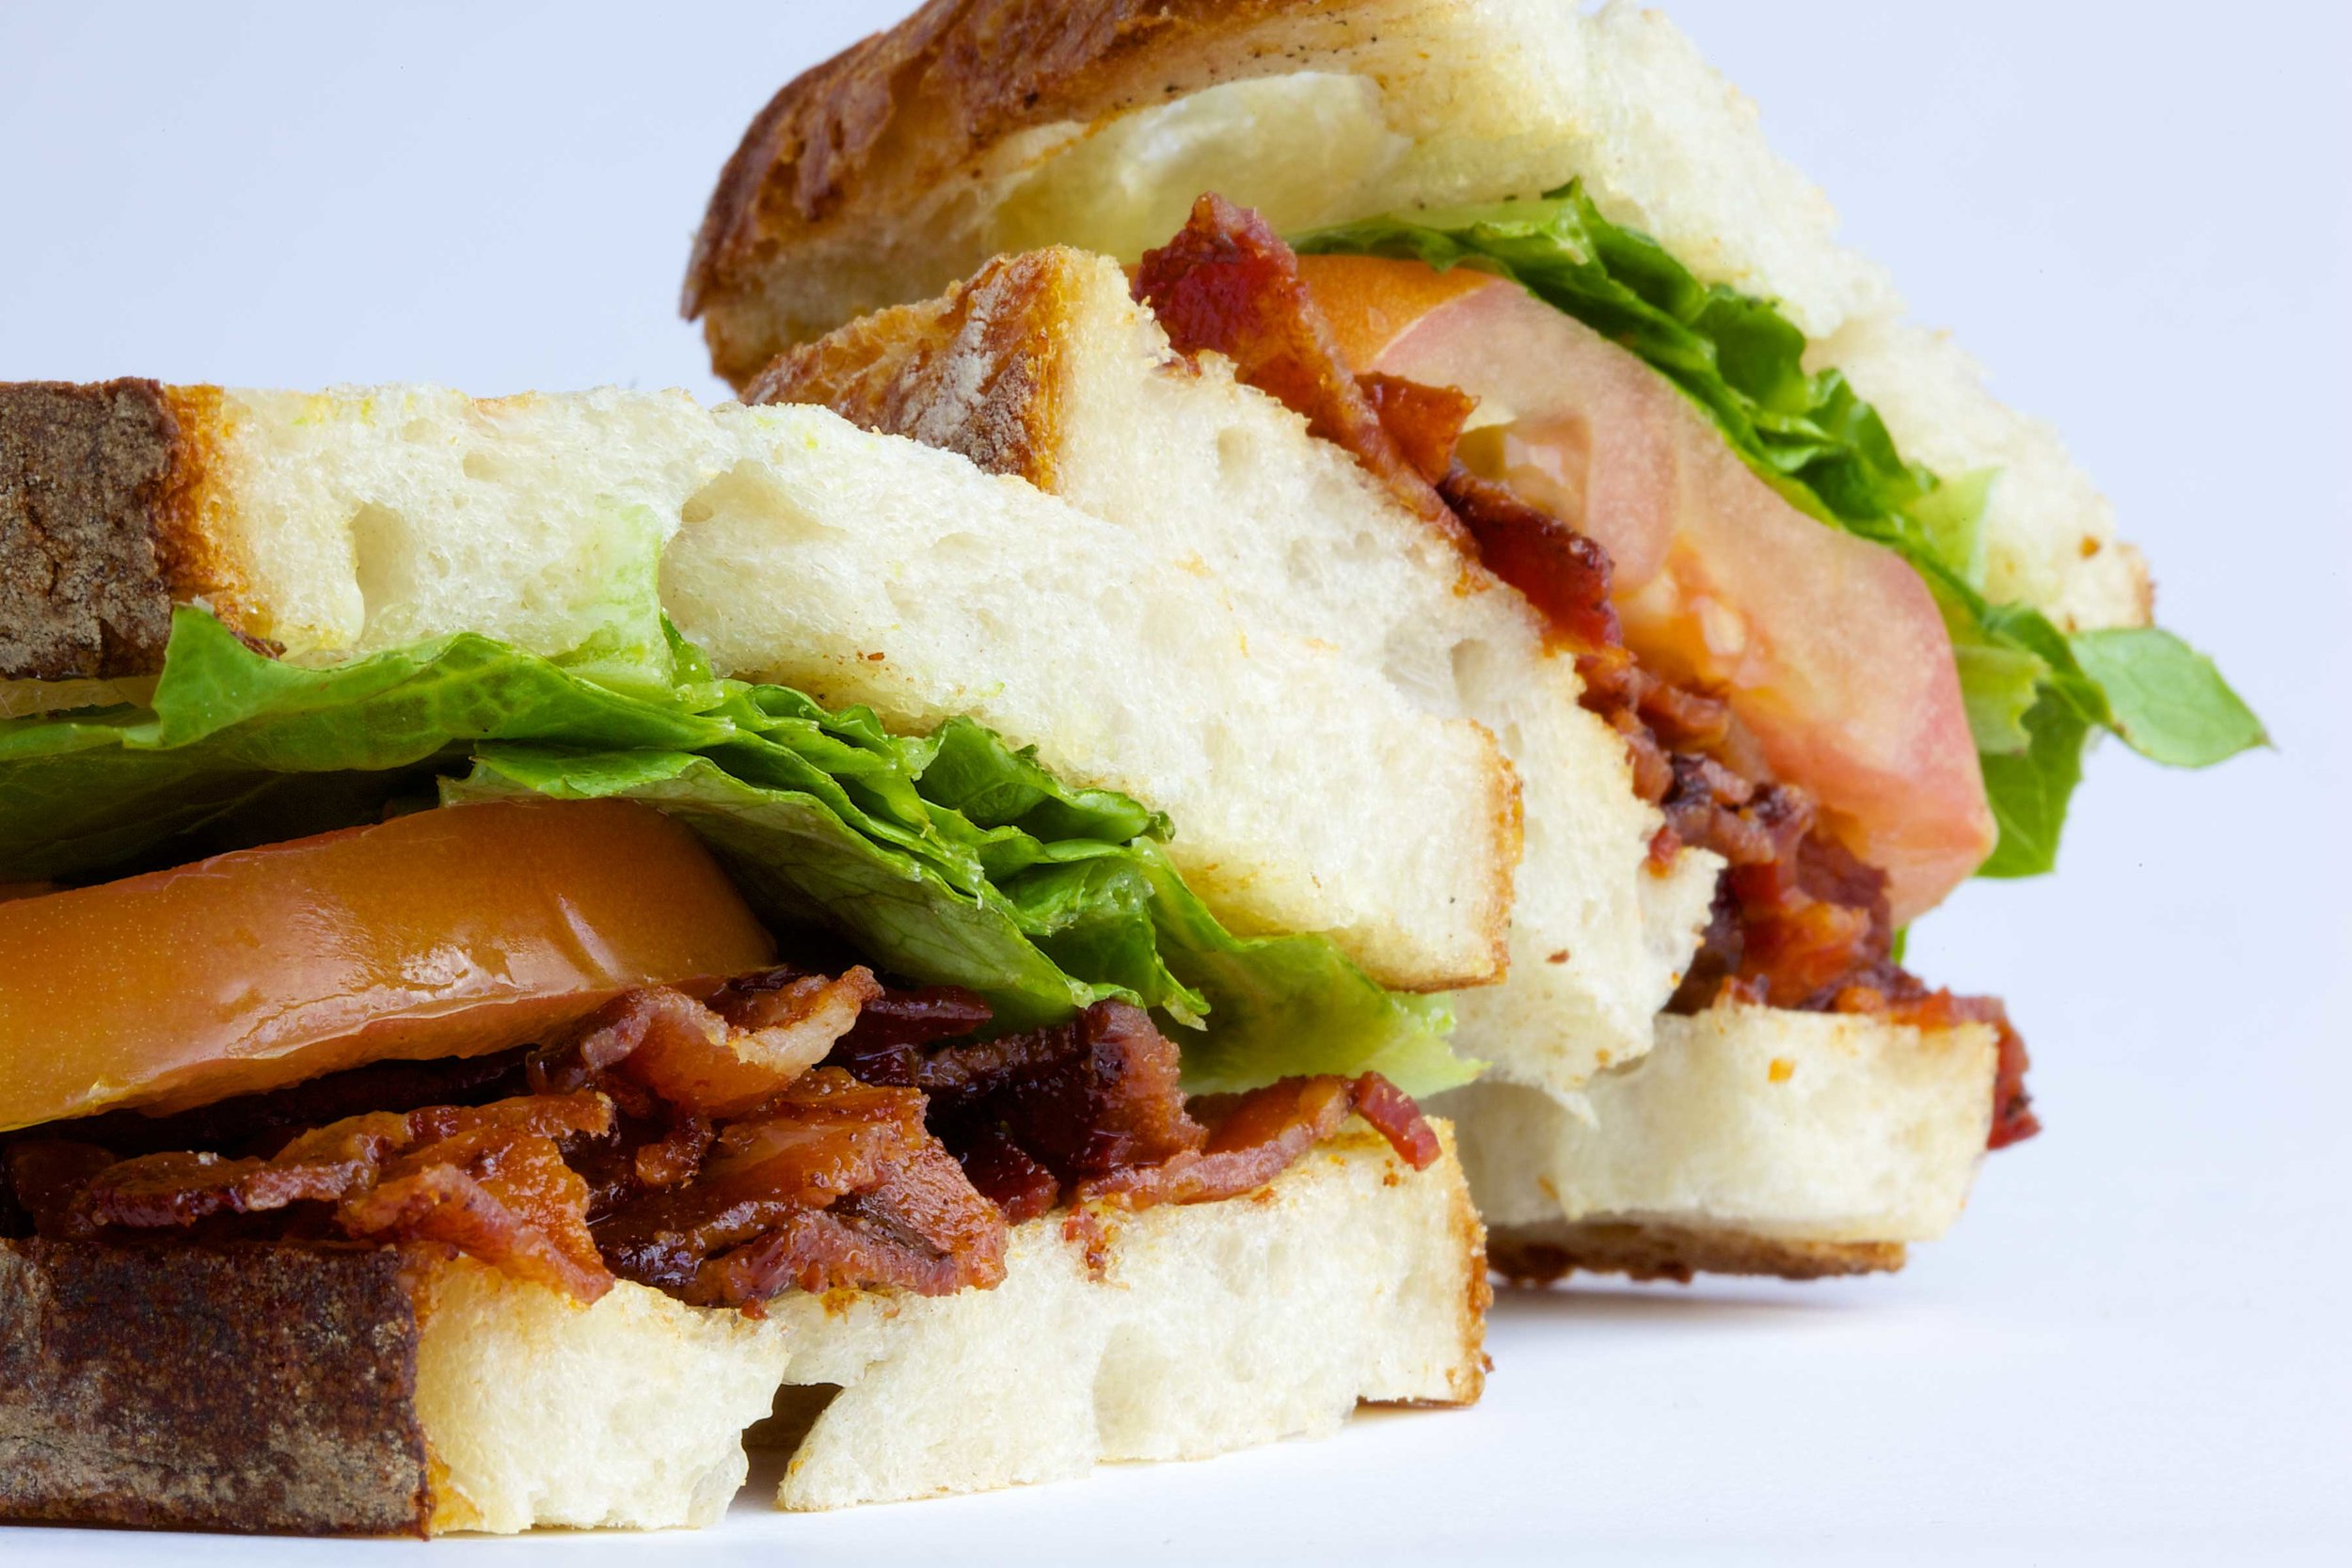 BLT. Have it with regular mayo or spicy aioli